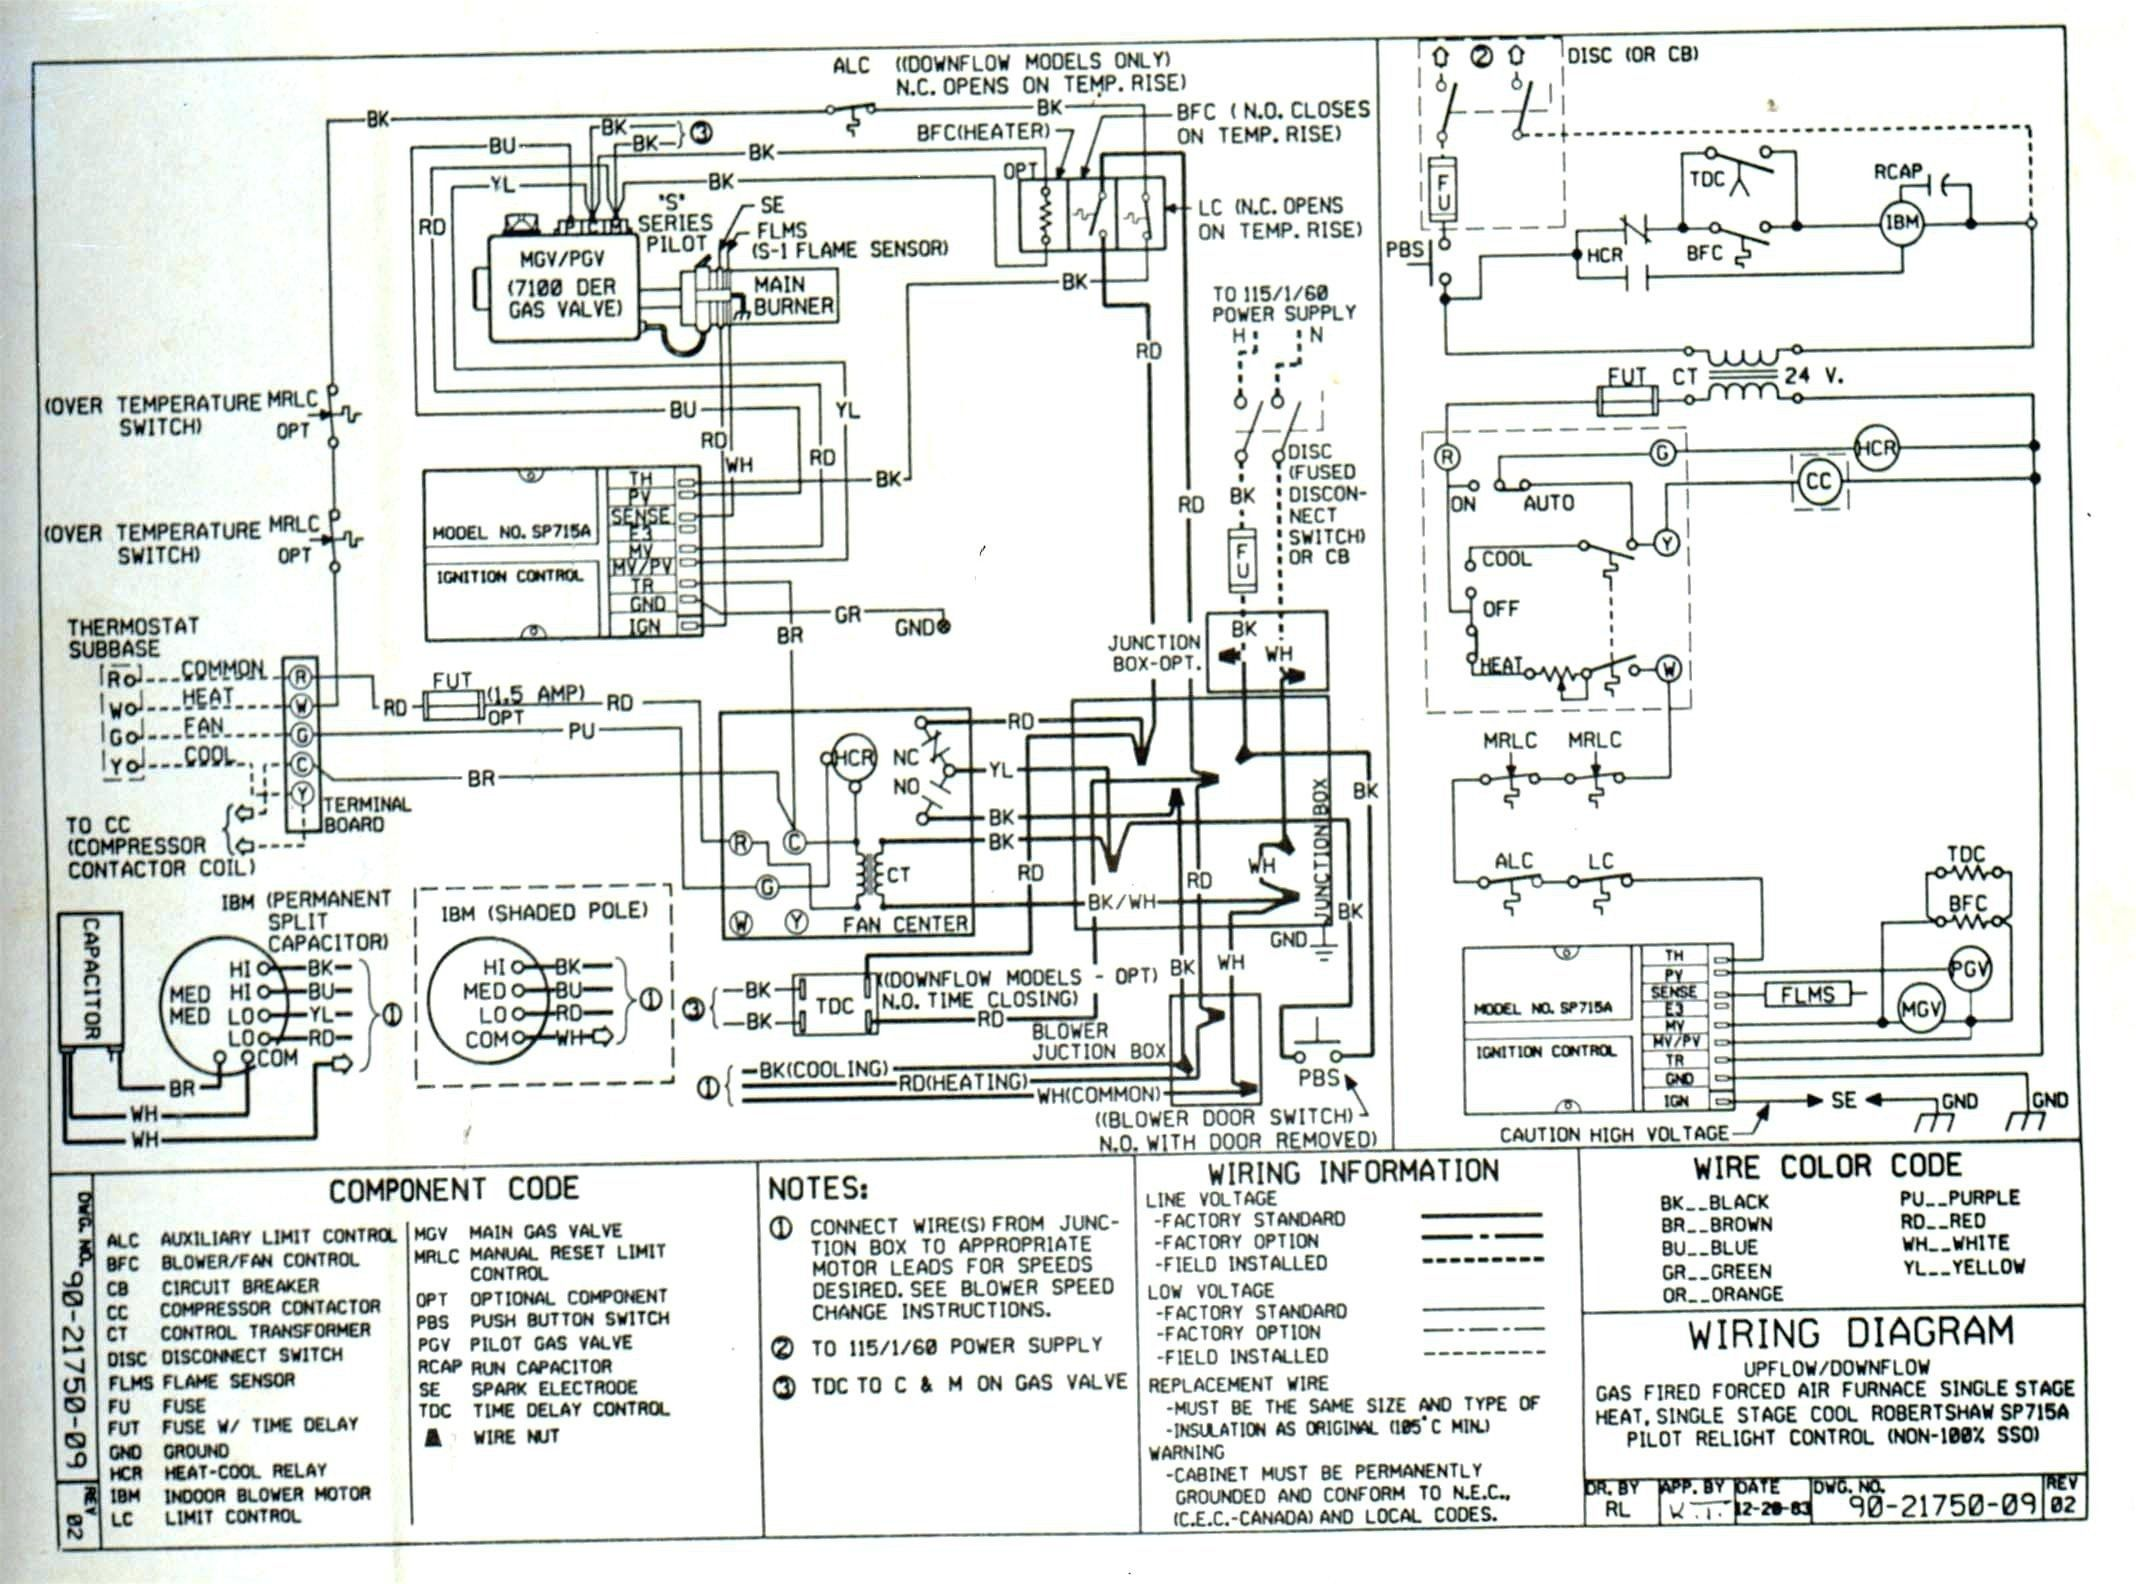 Trane Contactor Wiring Diagram - Camaro Mustang Fuse Wiring Diagrams for Wiring  Diagram SchematicsWiring Diagram Schematics